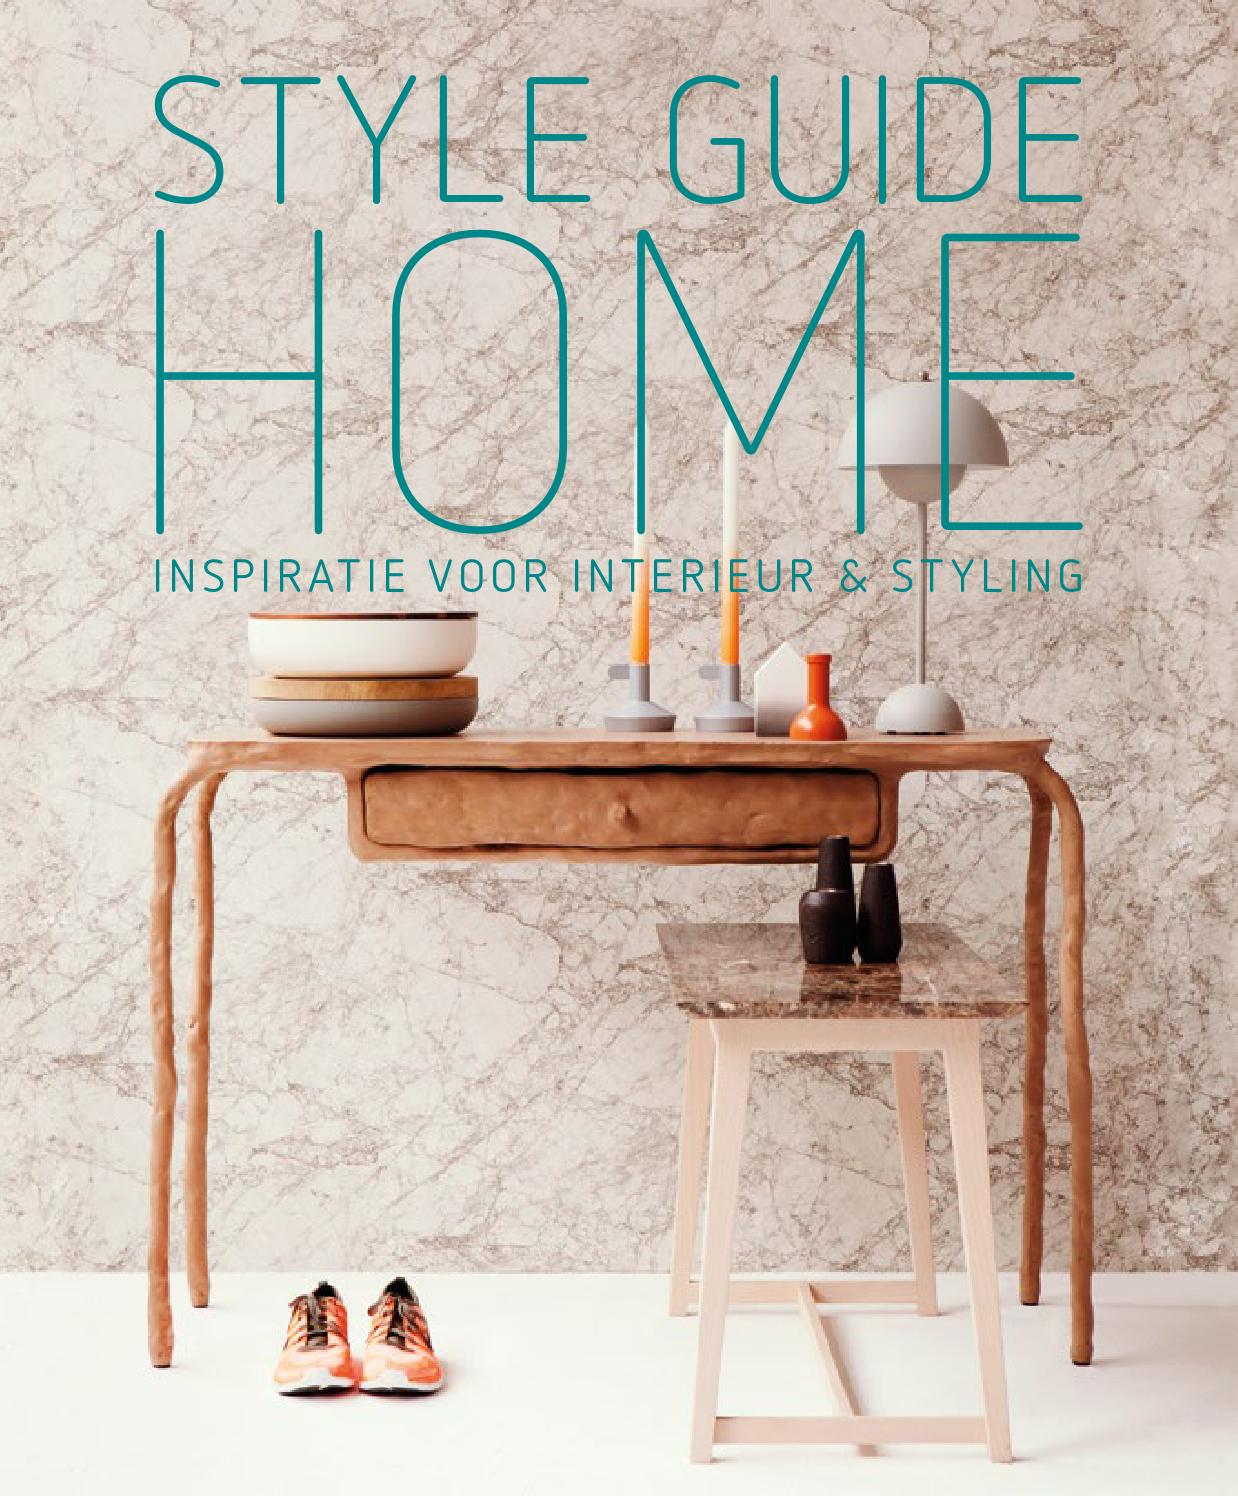 Style guide home 2012 2013 by perscentrum wonen   issuu